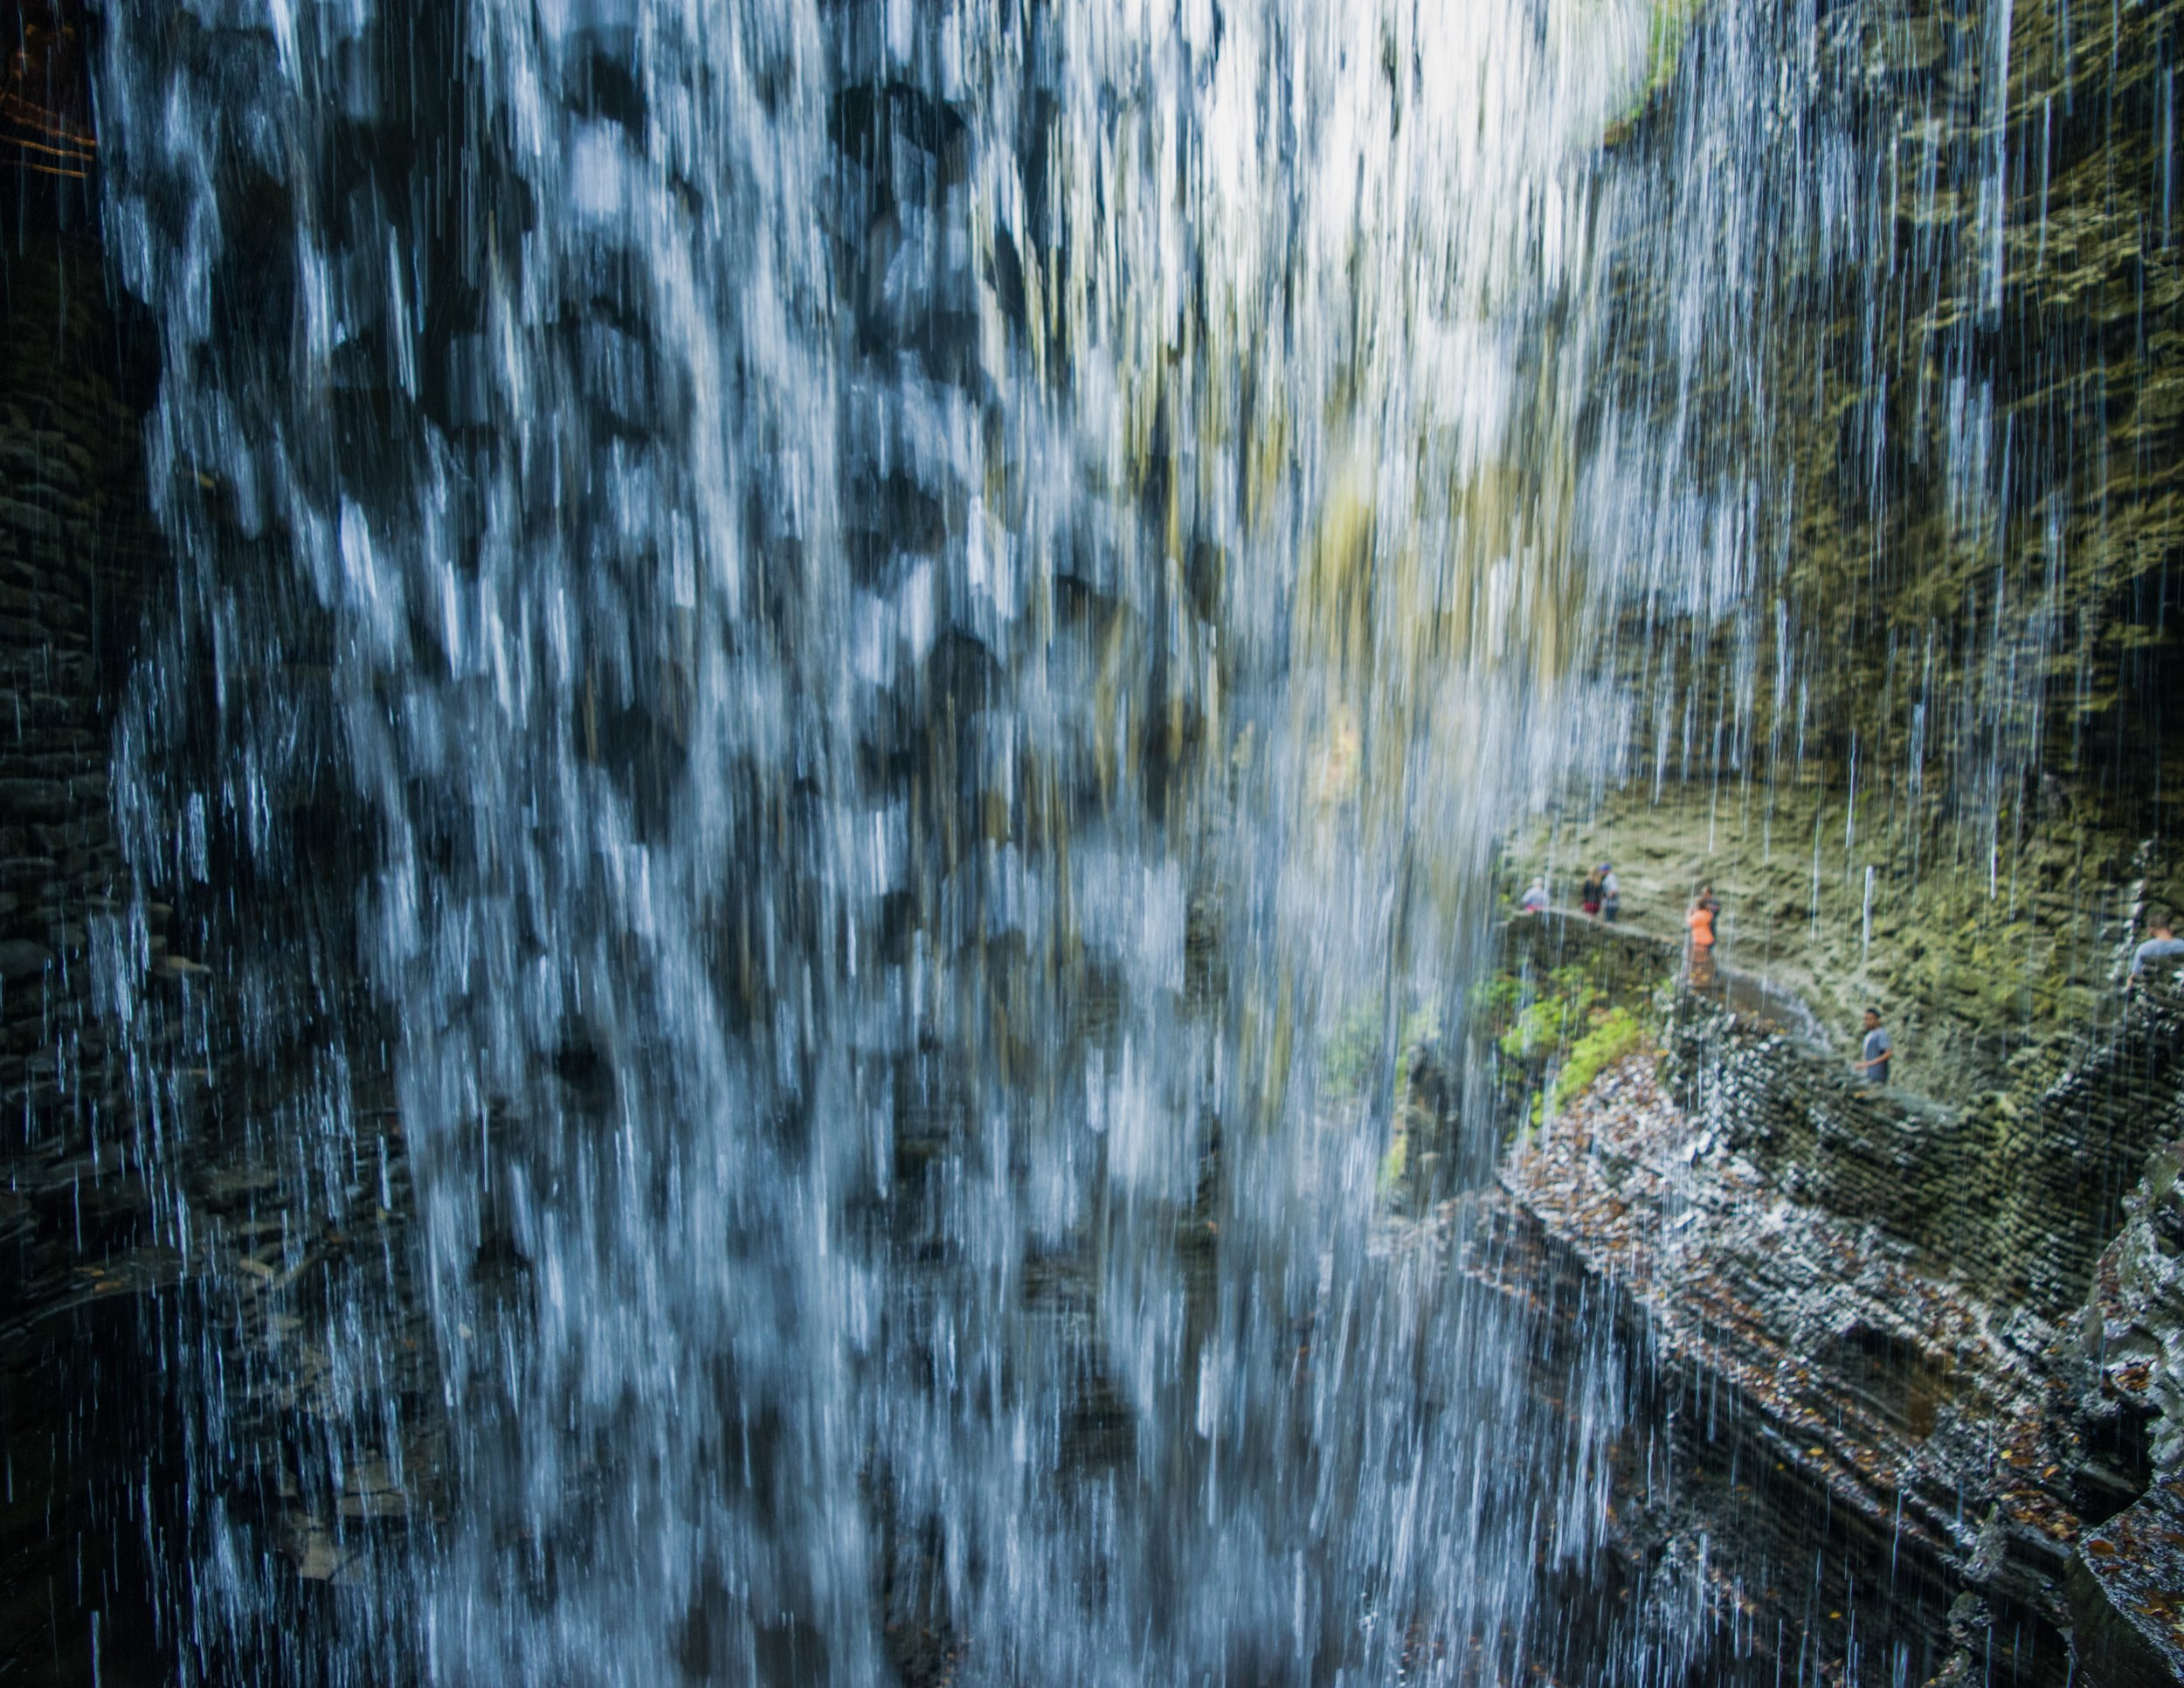 Behind the waterfall at Cavern Cascade